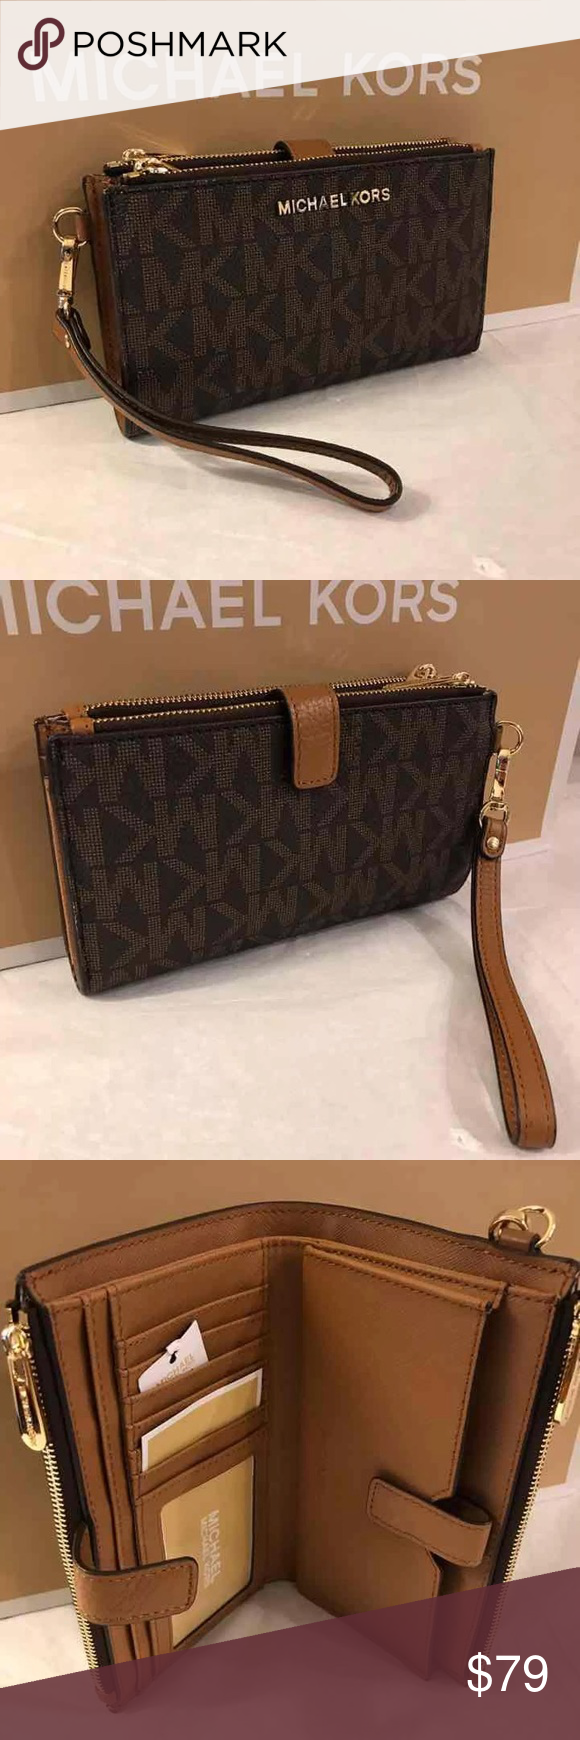 2ee6bb7baeab Michael Kors Double Zip Wallet Wristlet NWT Michael Kors Jet Set Travel  Double Zip Wristlet